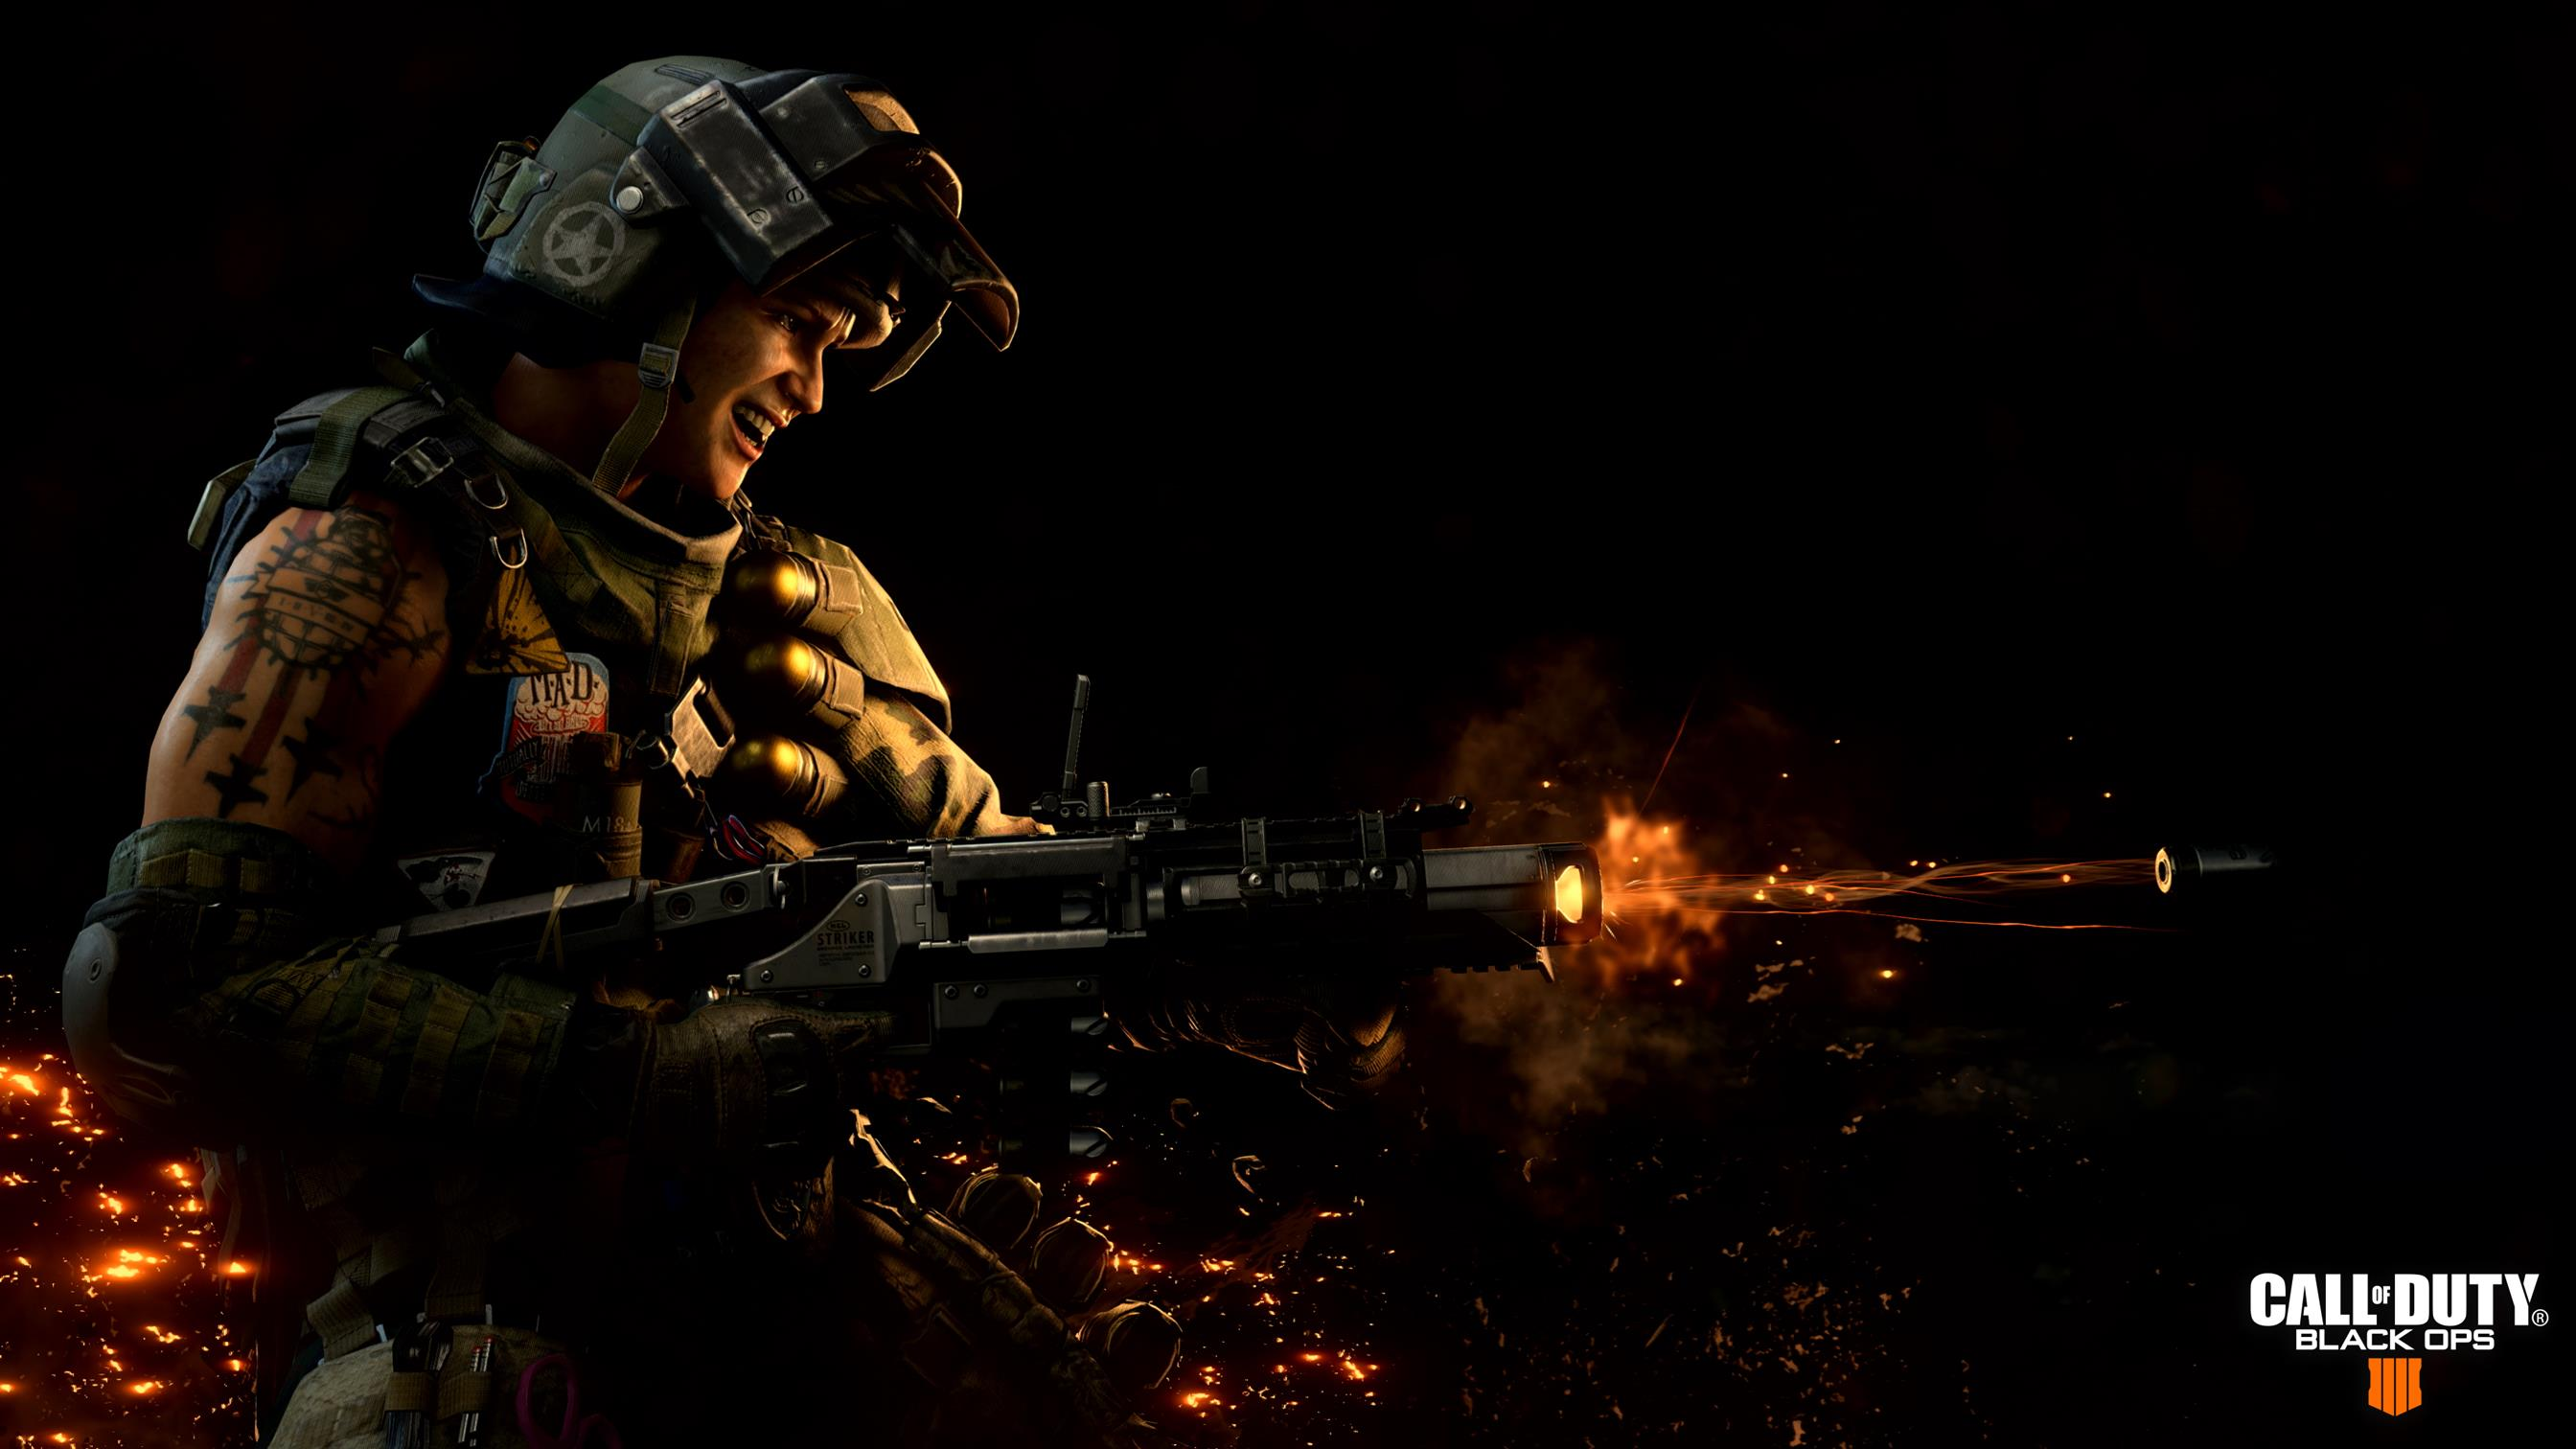 'Call of Duty: Black Ops 4' Gets Official 'Blackout' Trailer